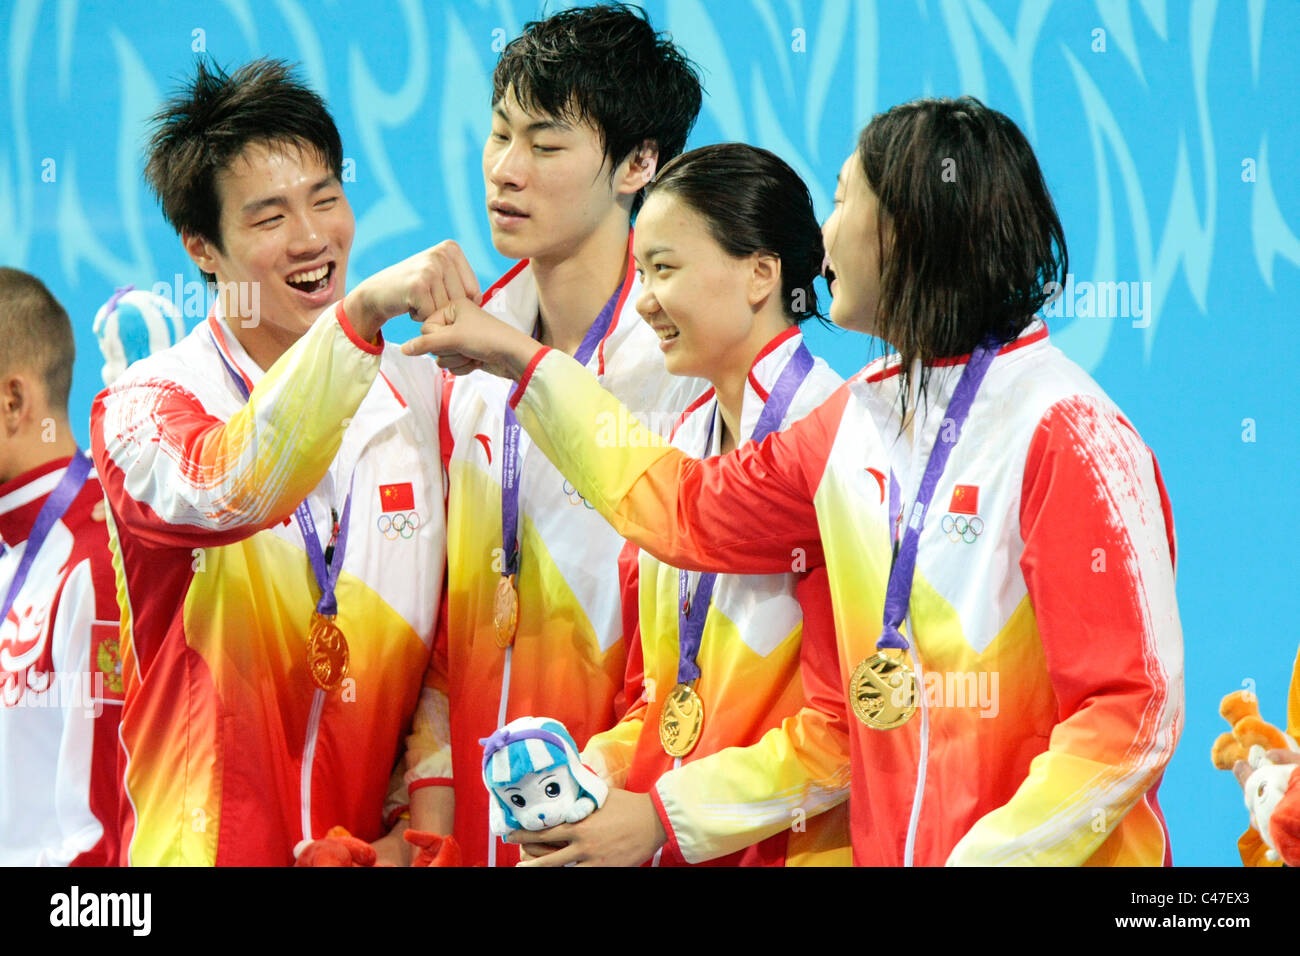 Team China takes the gold in the Mixed 4x100m Medley Relay Finals. - Stock Image